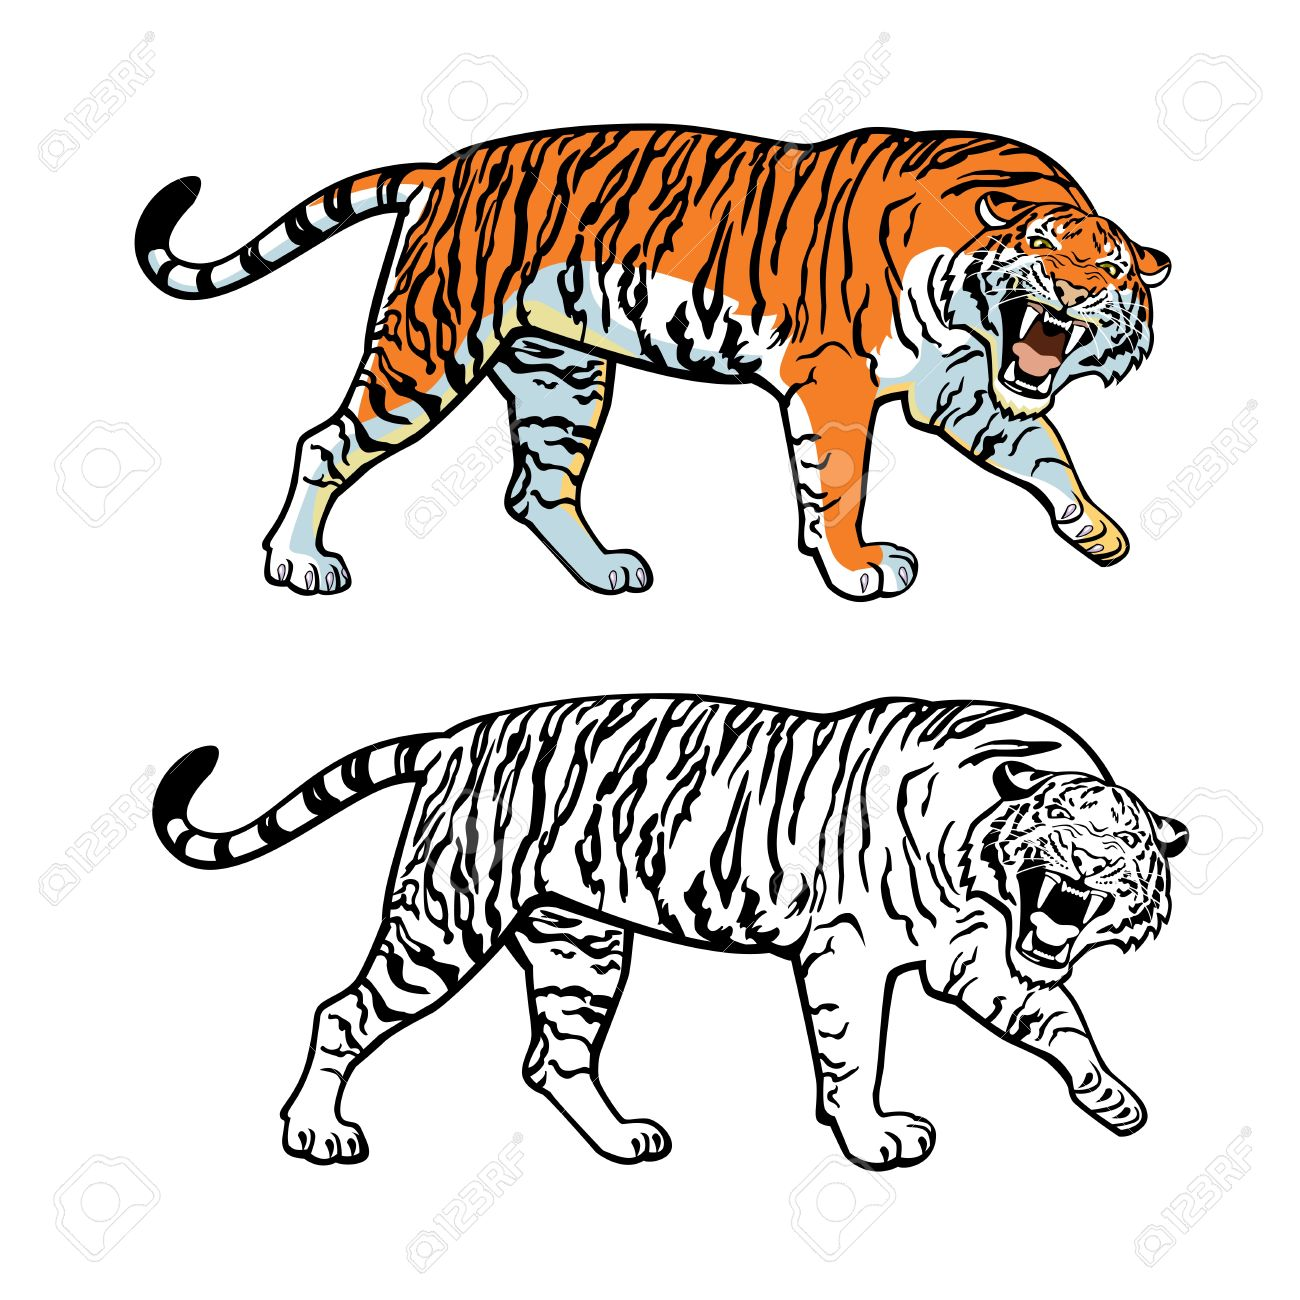 Amur Tiger clipart #12, Download drawings